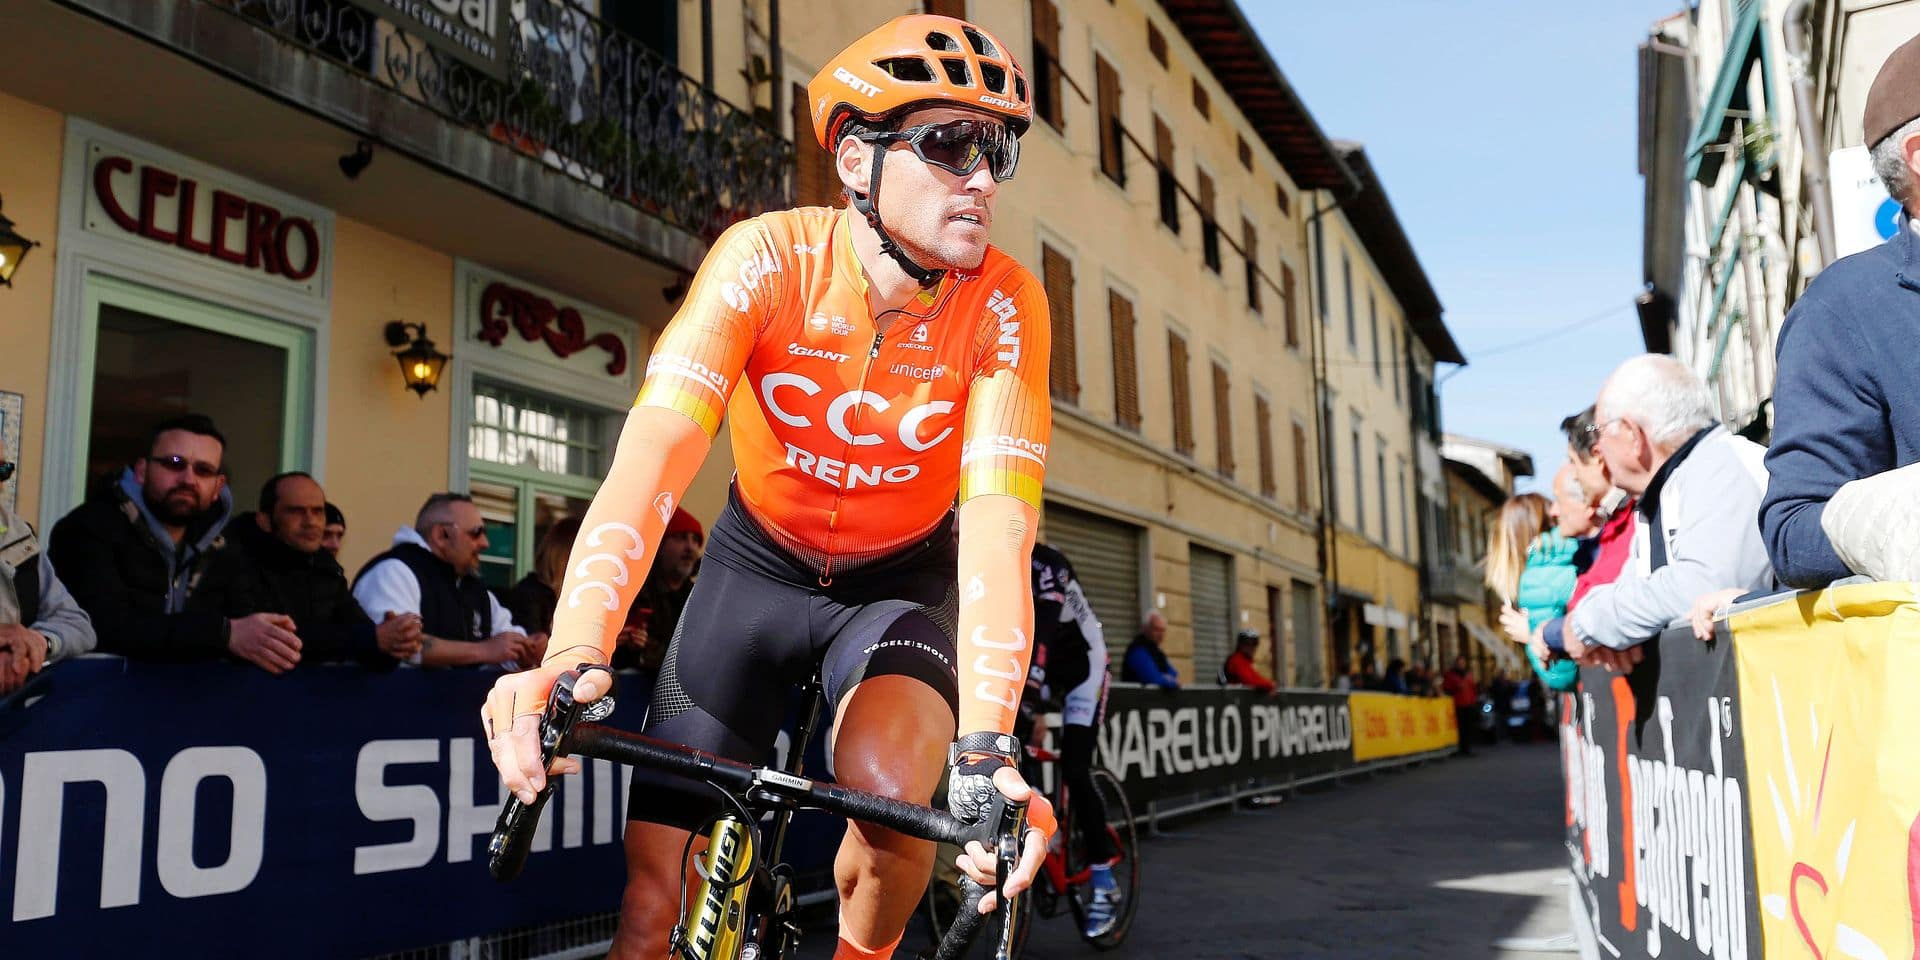 Belgian Greg Van Avermaet of CCC Team pictured ahead of stage 2 of the Tirreno-Adriatico cycling race, from Camaiore to Pomarance (195 km), Italy, Thursday 14 March 2019. BELGA PHOTO YUZURU SUNADA - FRANCE OUT